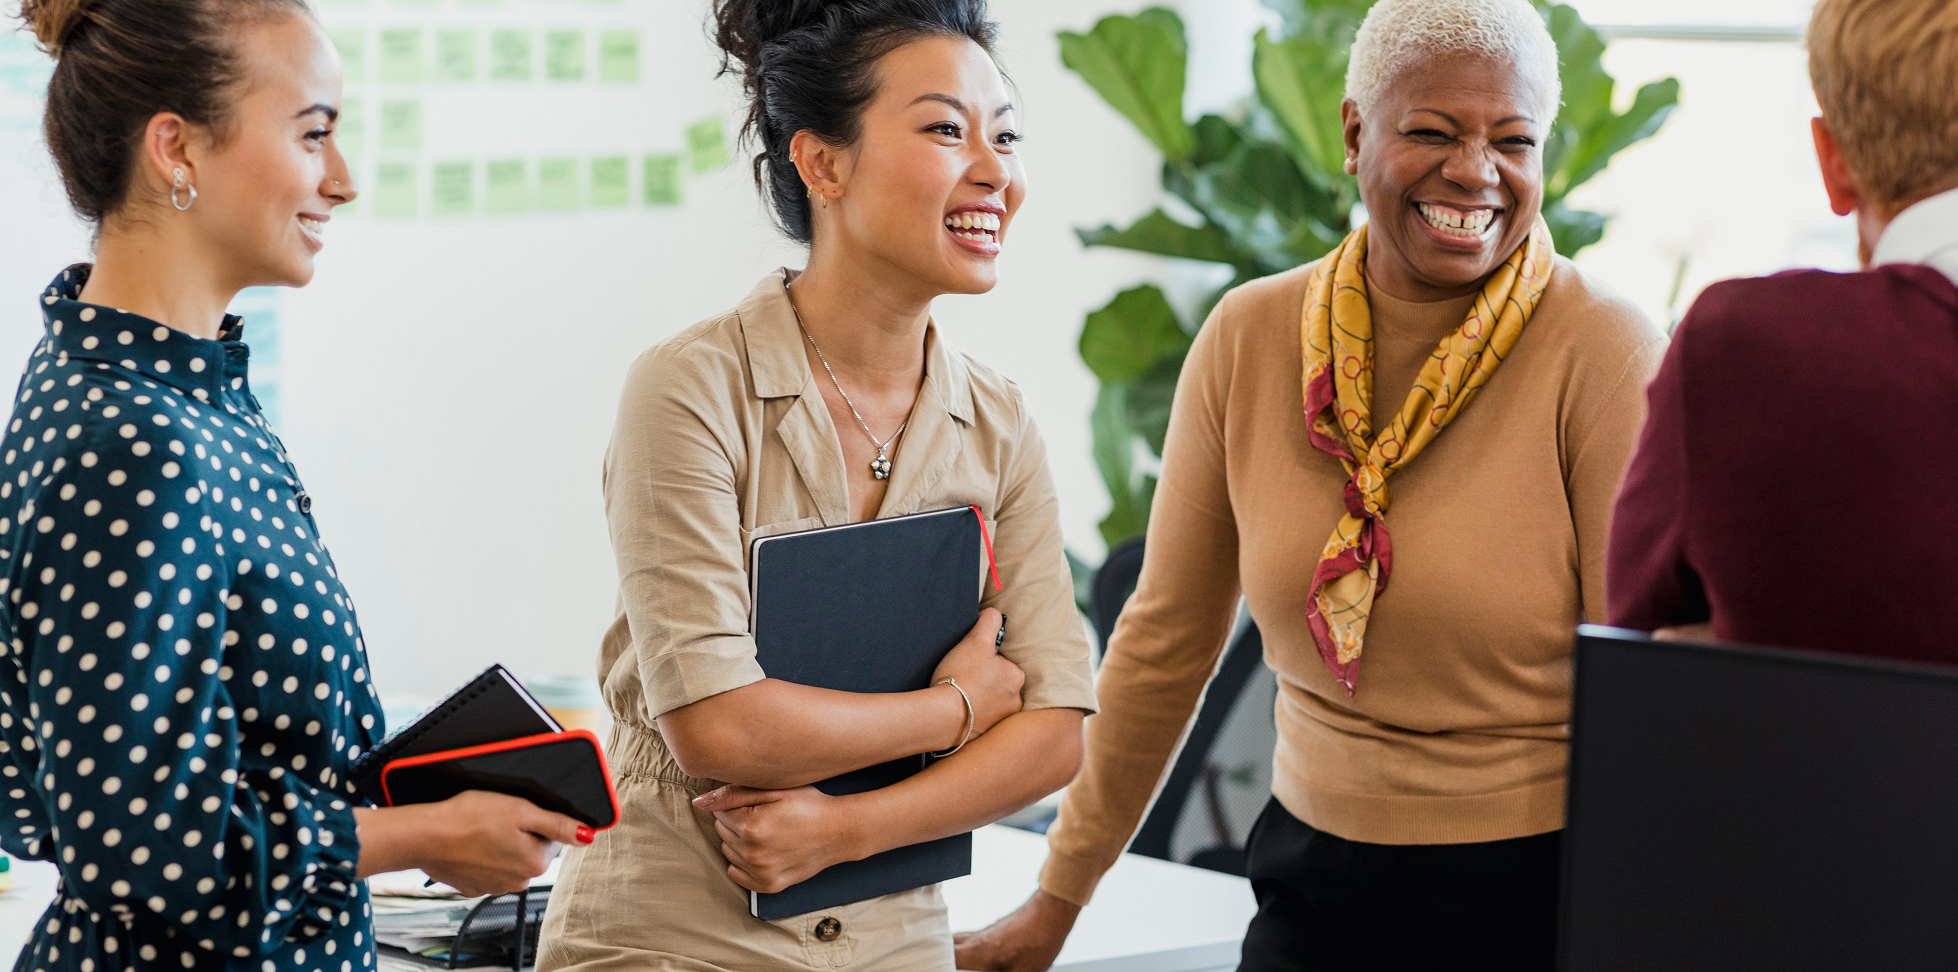 Diversity, Equity and Inclusion and Bringing the Whole Self to Work